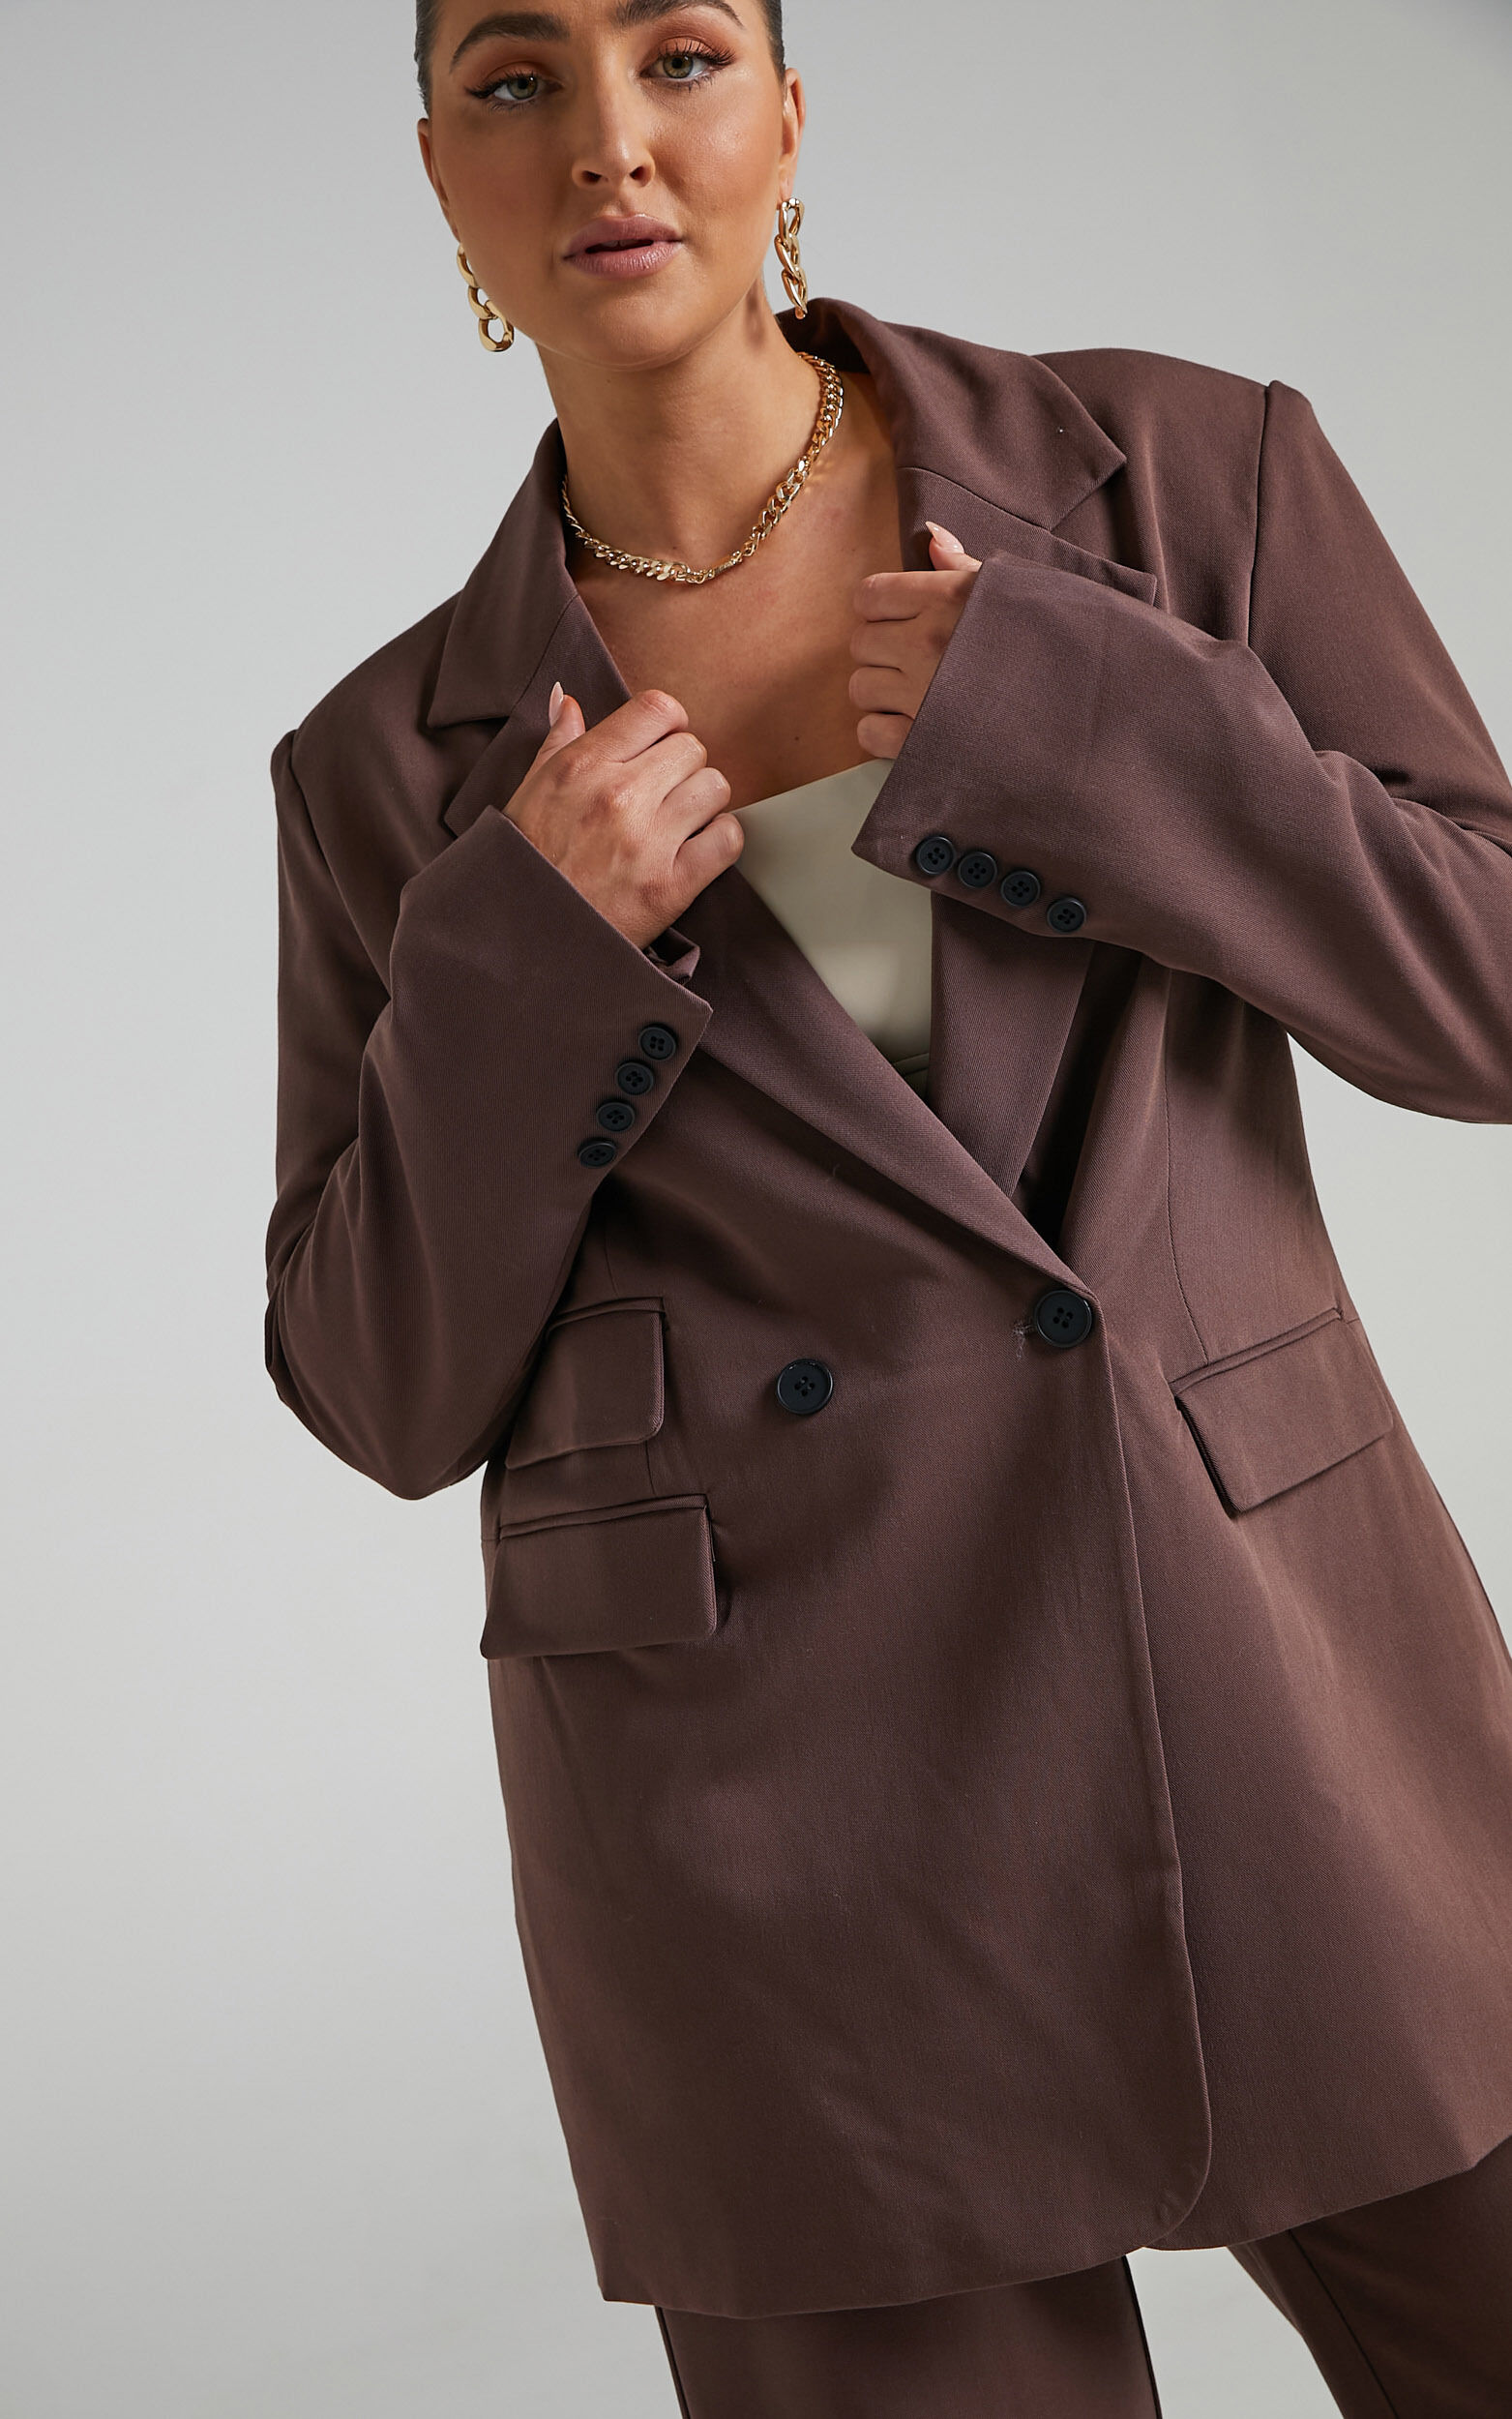 Kitty Oversized Blazer in Chocolate - 04, BRN2, super-hi-res image number null